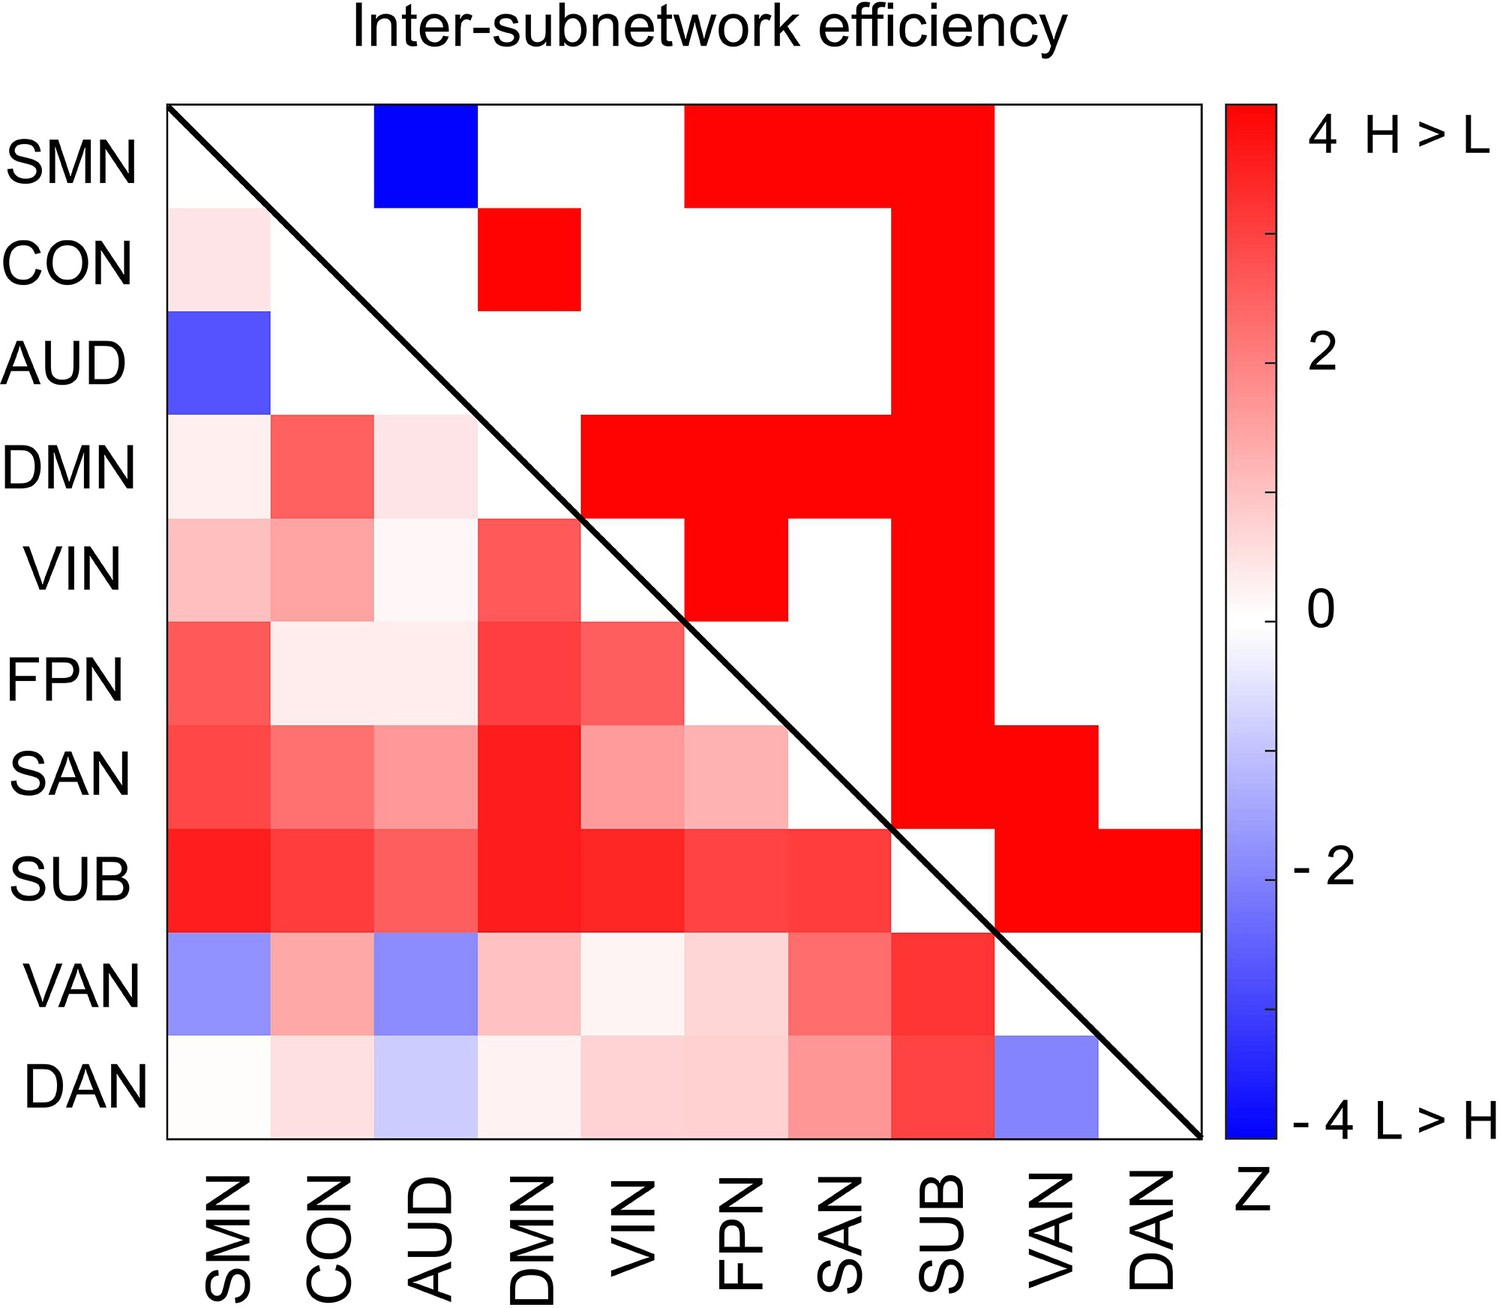 Large-scale network integration in the human brain tracks